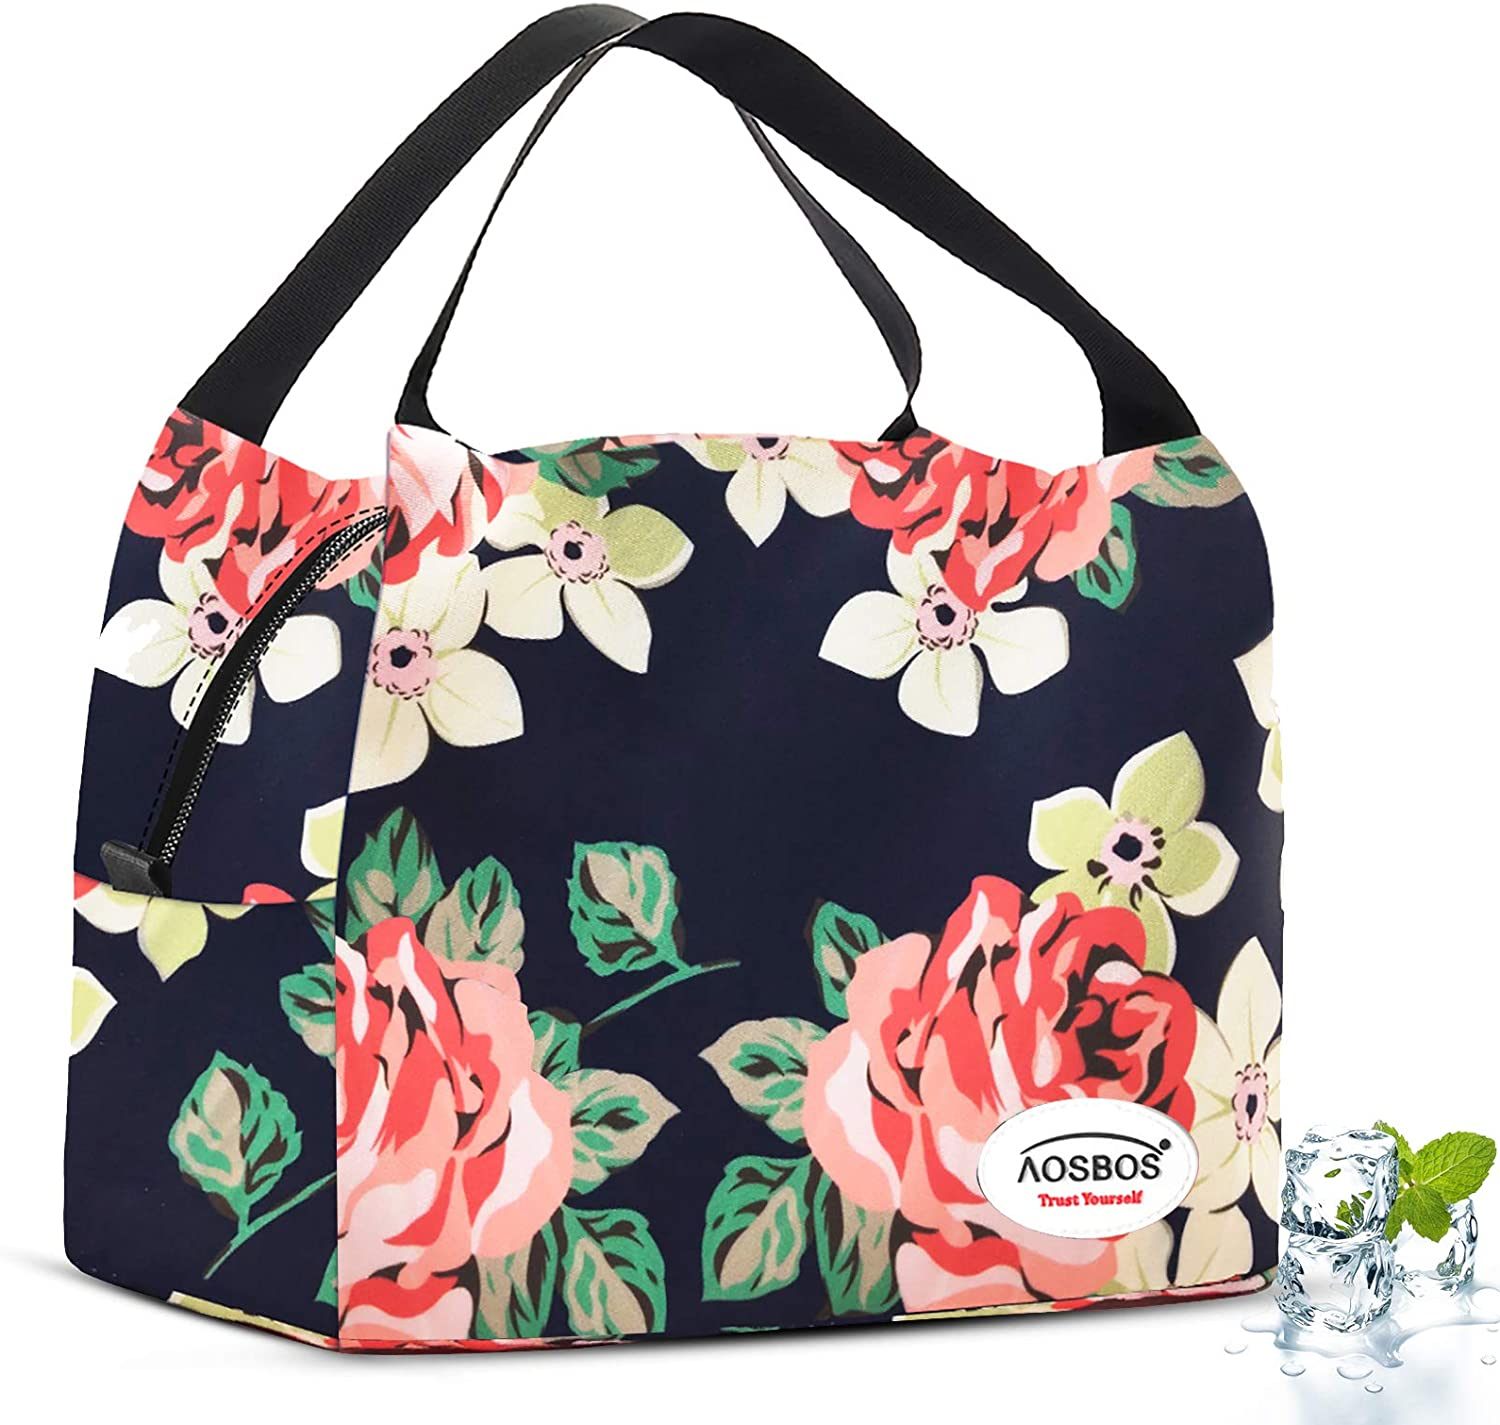 Aosbos Lunch Bags for Women Insulated Lunch Bag Soft Cooler Bag Floral Food Container Tote Bag Lunch Box Meal Prep Container for Work Picnic Office Red Peony Flower